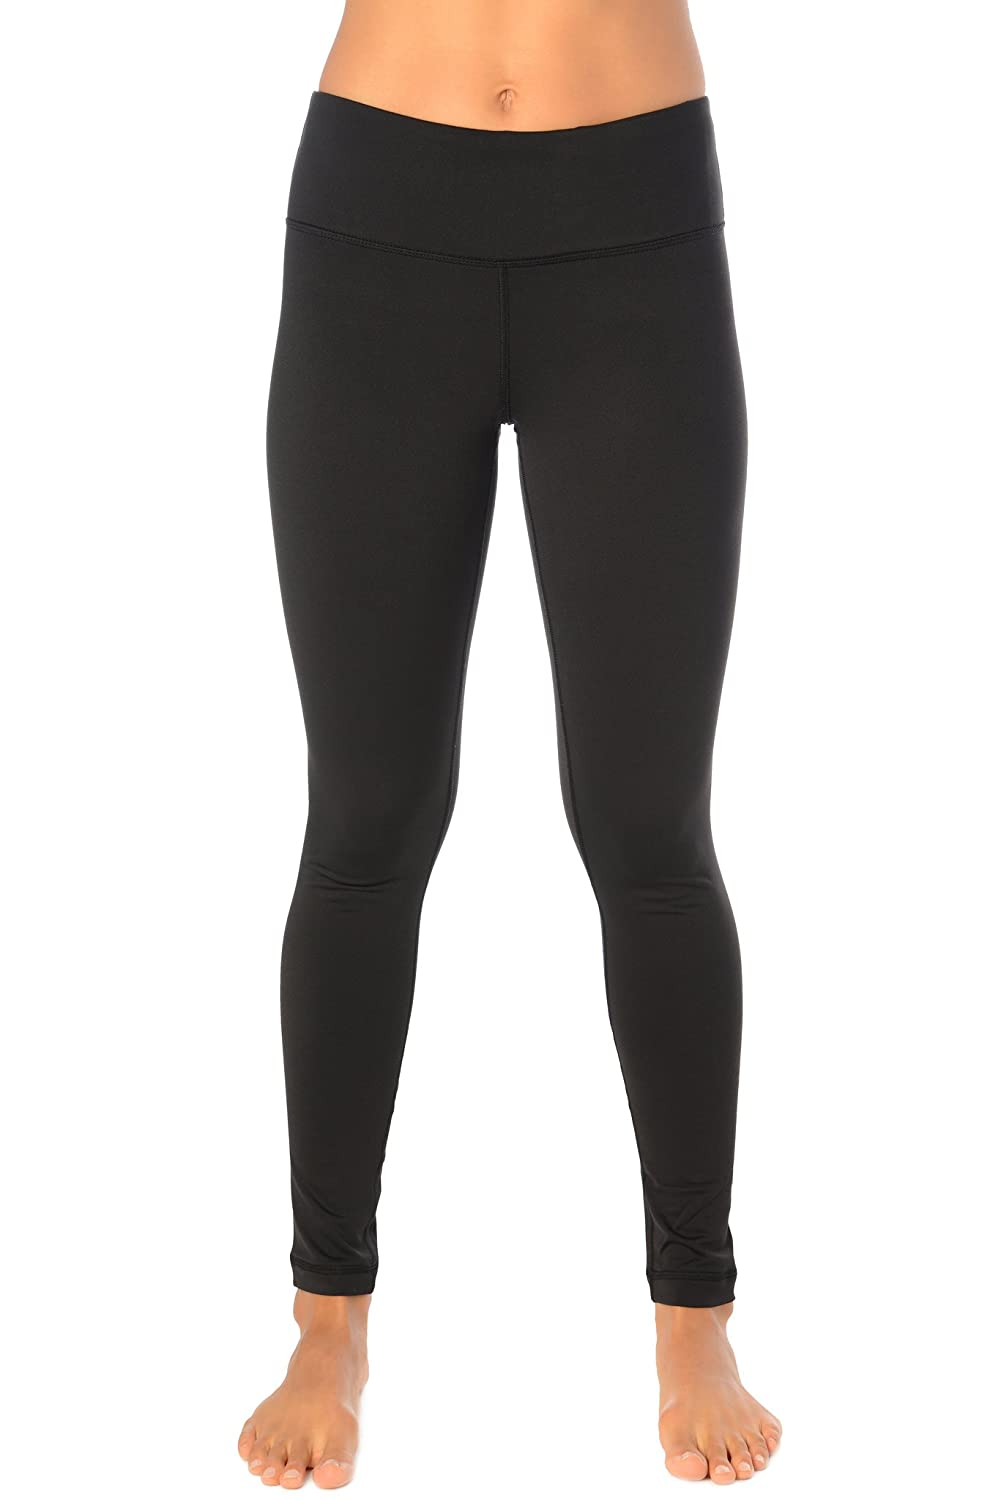 65c04f3460d12d Chinabrands.com: Dropshipping & Wholesale cheap 90 Degree By Reflex Fleece  Lined Leggings - Yoga Pants online.